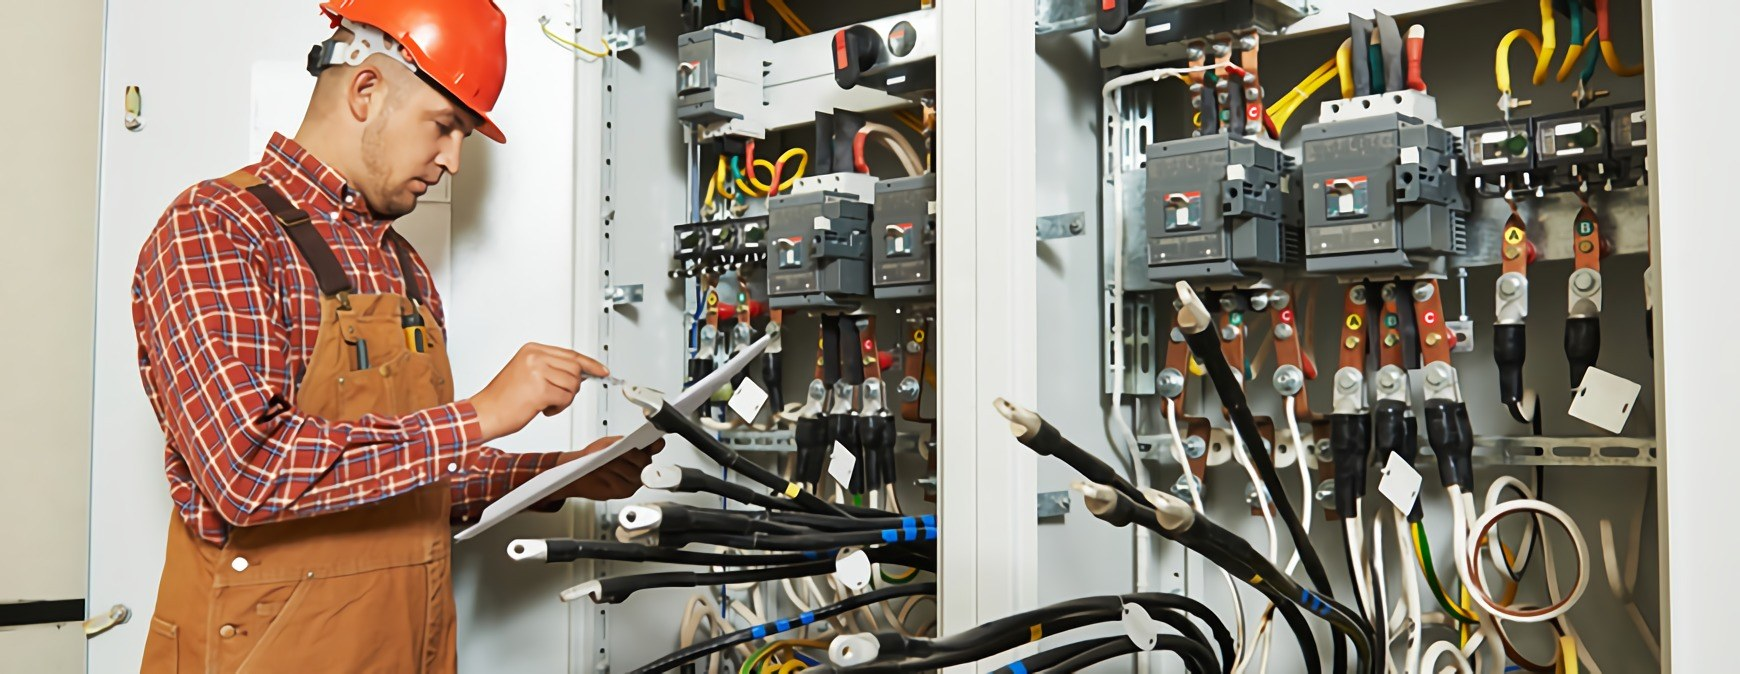 becoming an electrician